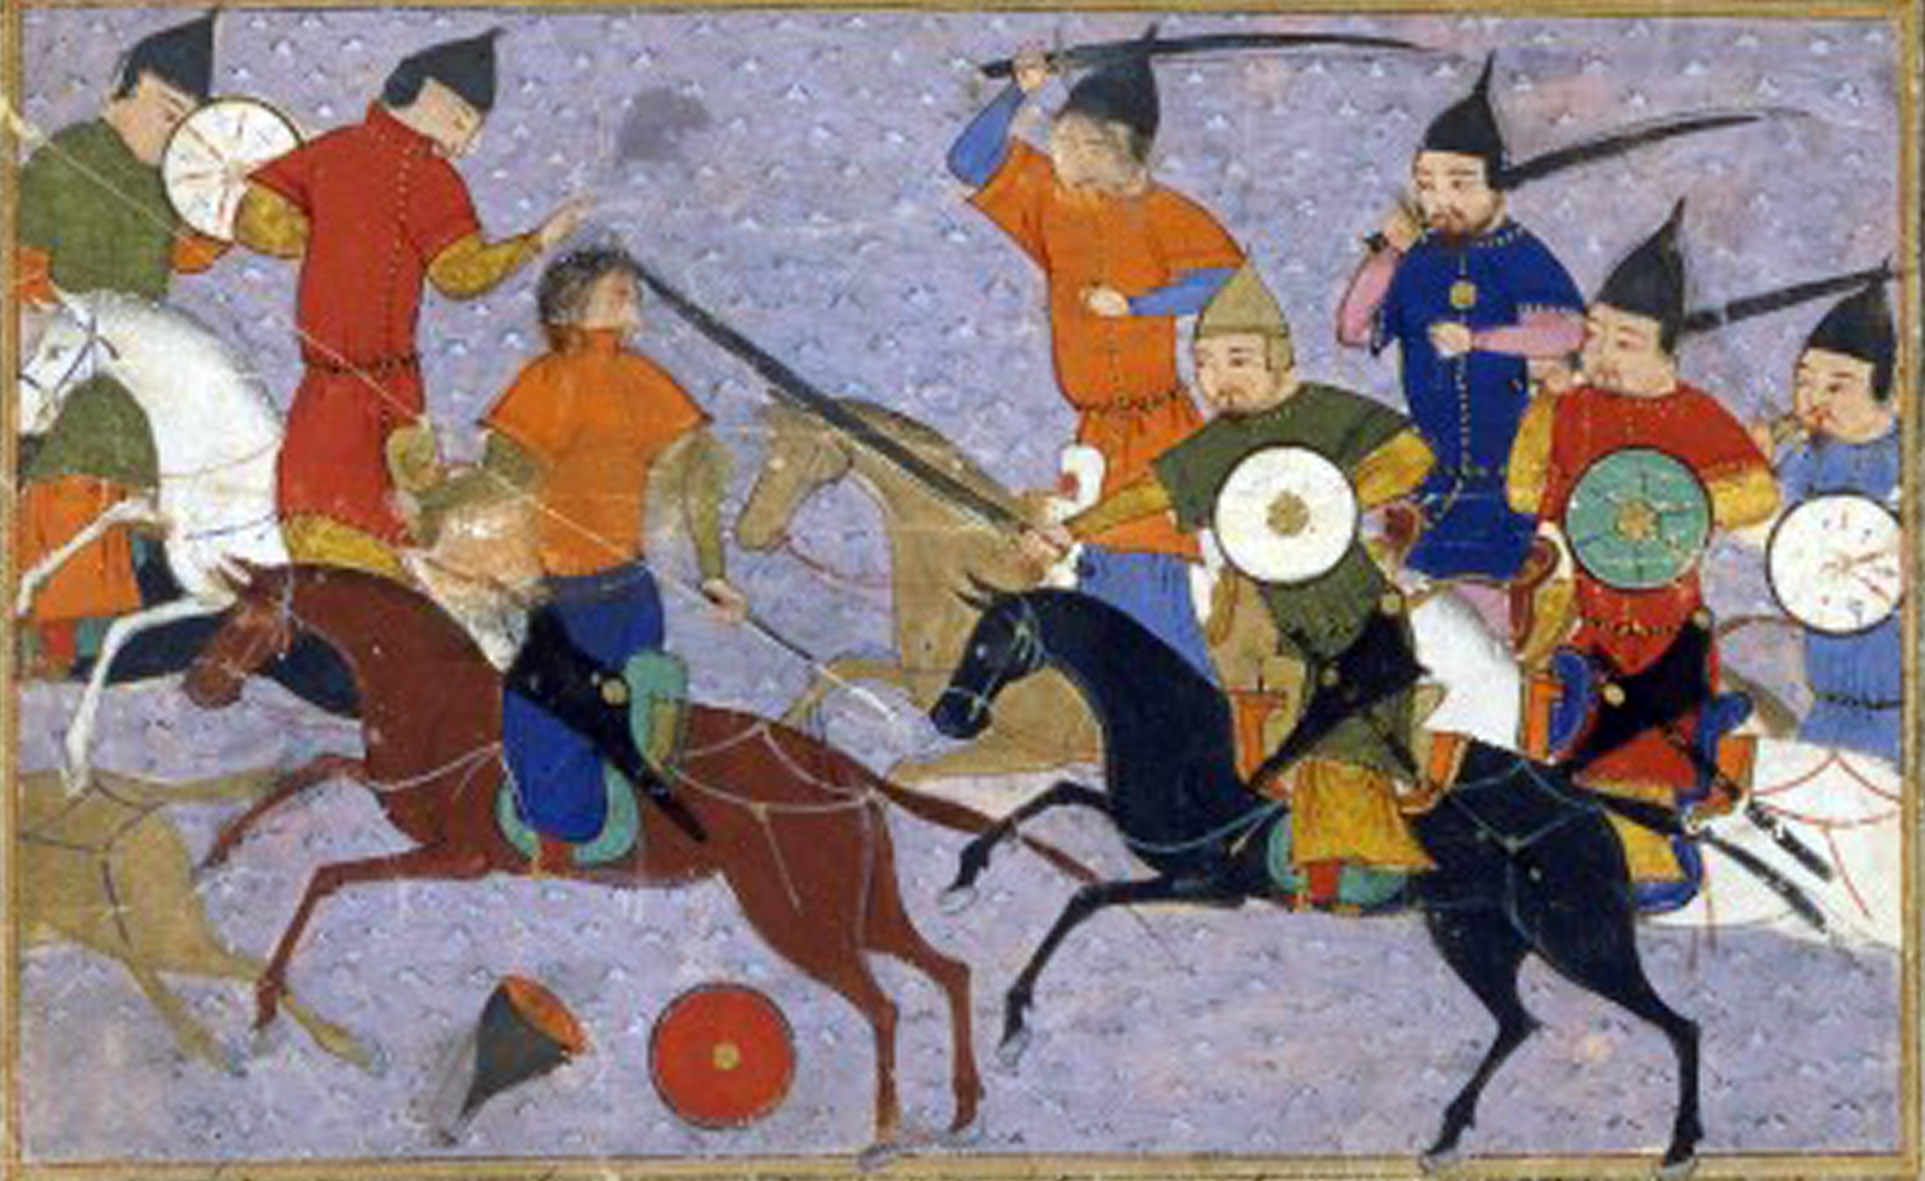 This is a representation of a battle between Mongols and the Chinese, recorded in 1211 in the <em>Jami' al-tawarikh</em>, by Rashid al-Din. Note the Mongols standing in their saddles.